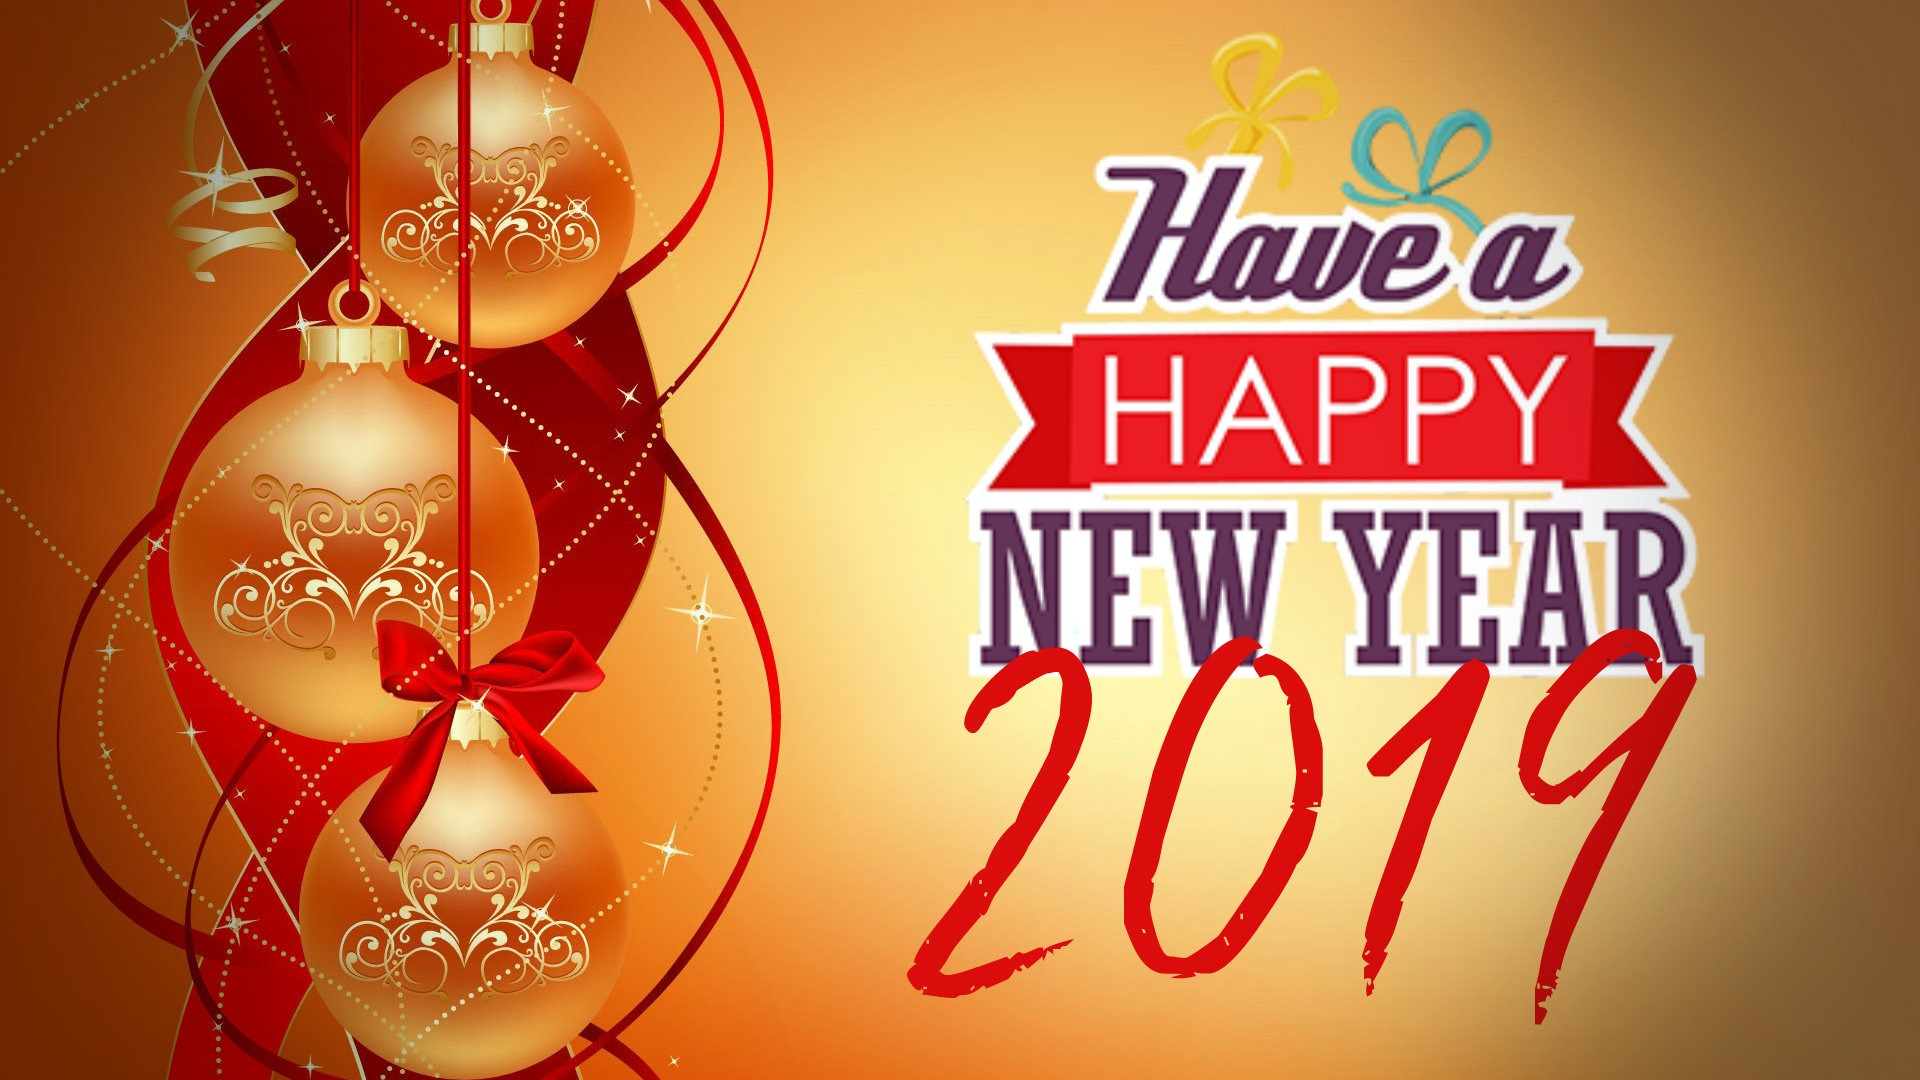 happy new year 2019 best wishes images quotes messages to share on facebook whatsapp